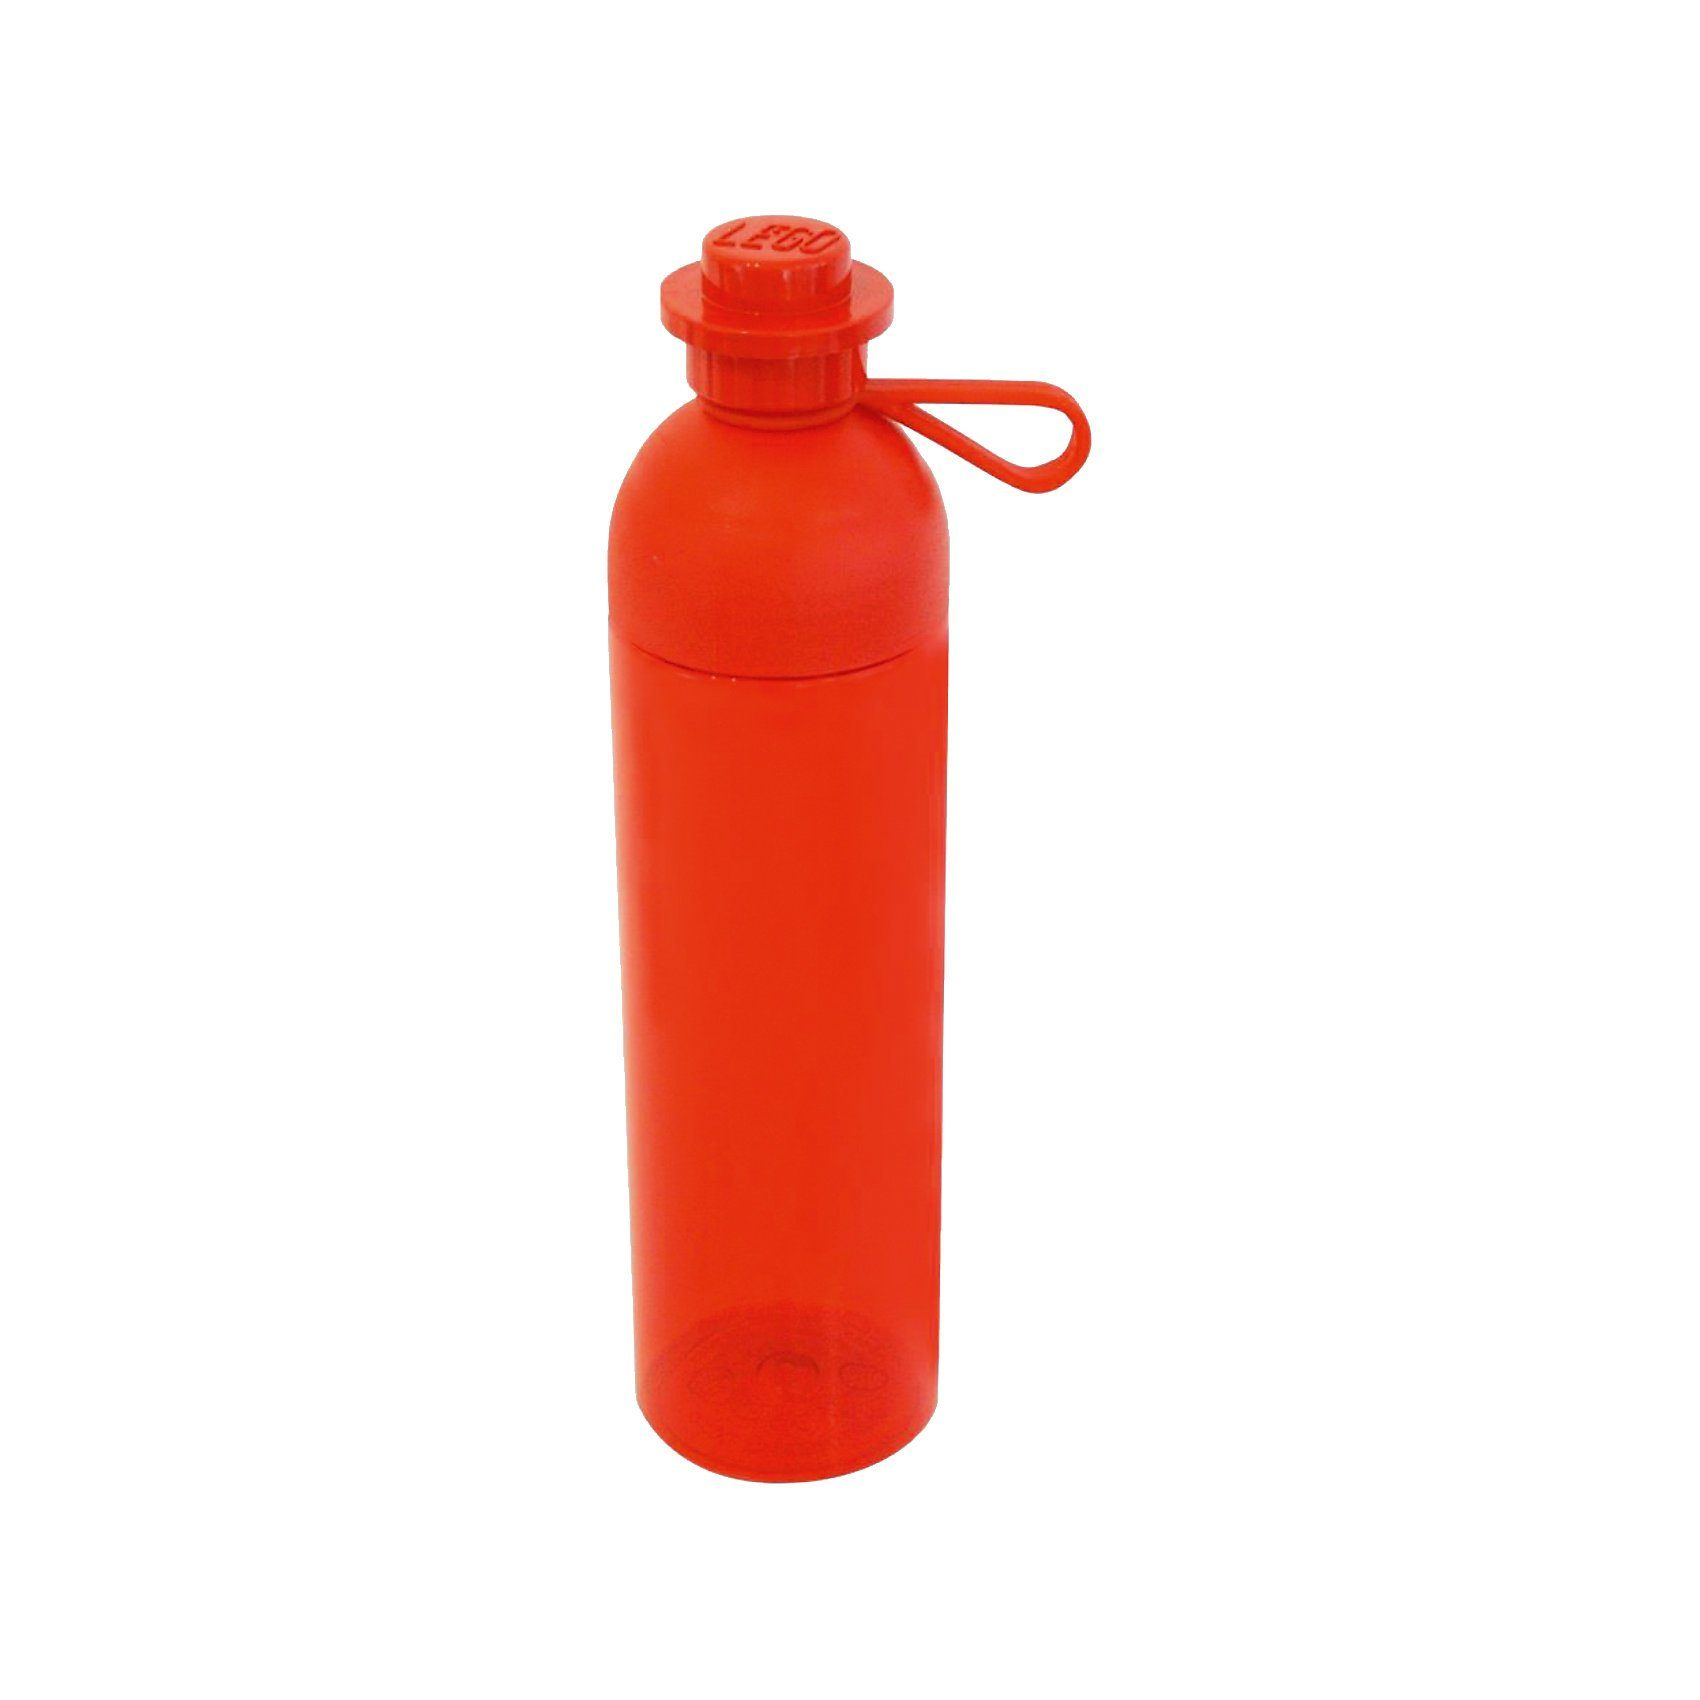 LEGO Trinkflasche rot, 740 ml